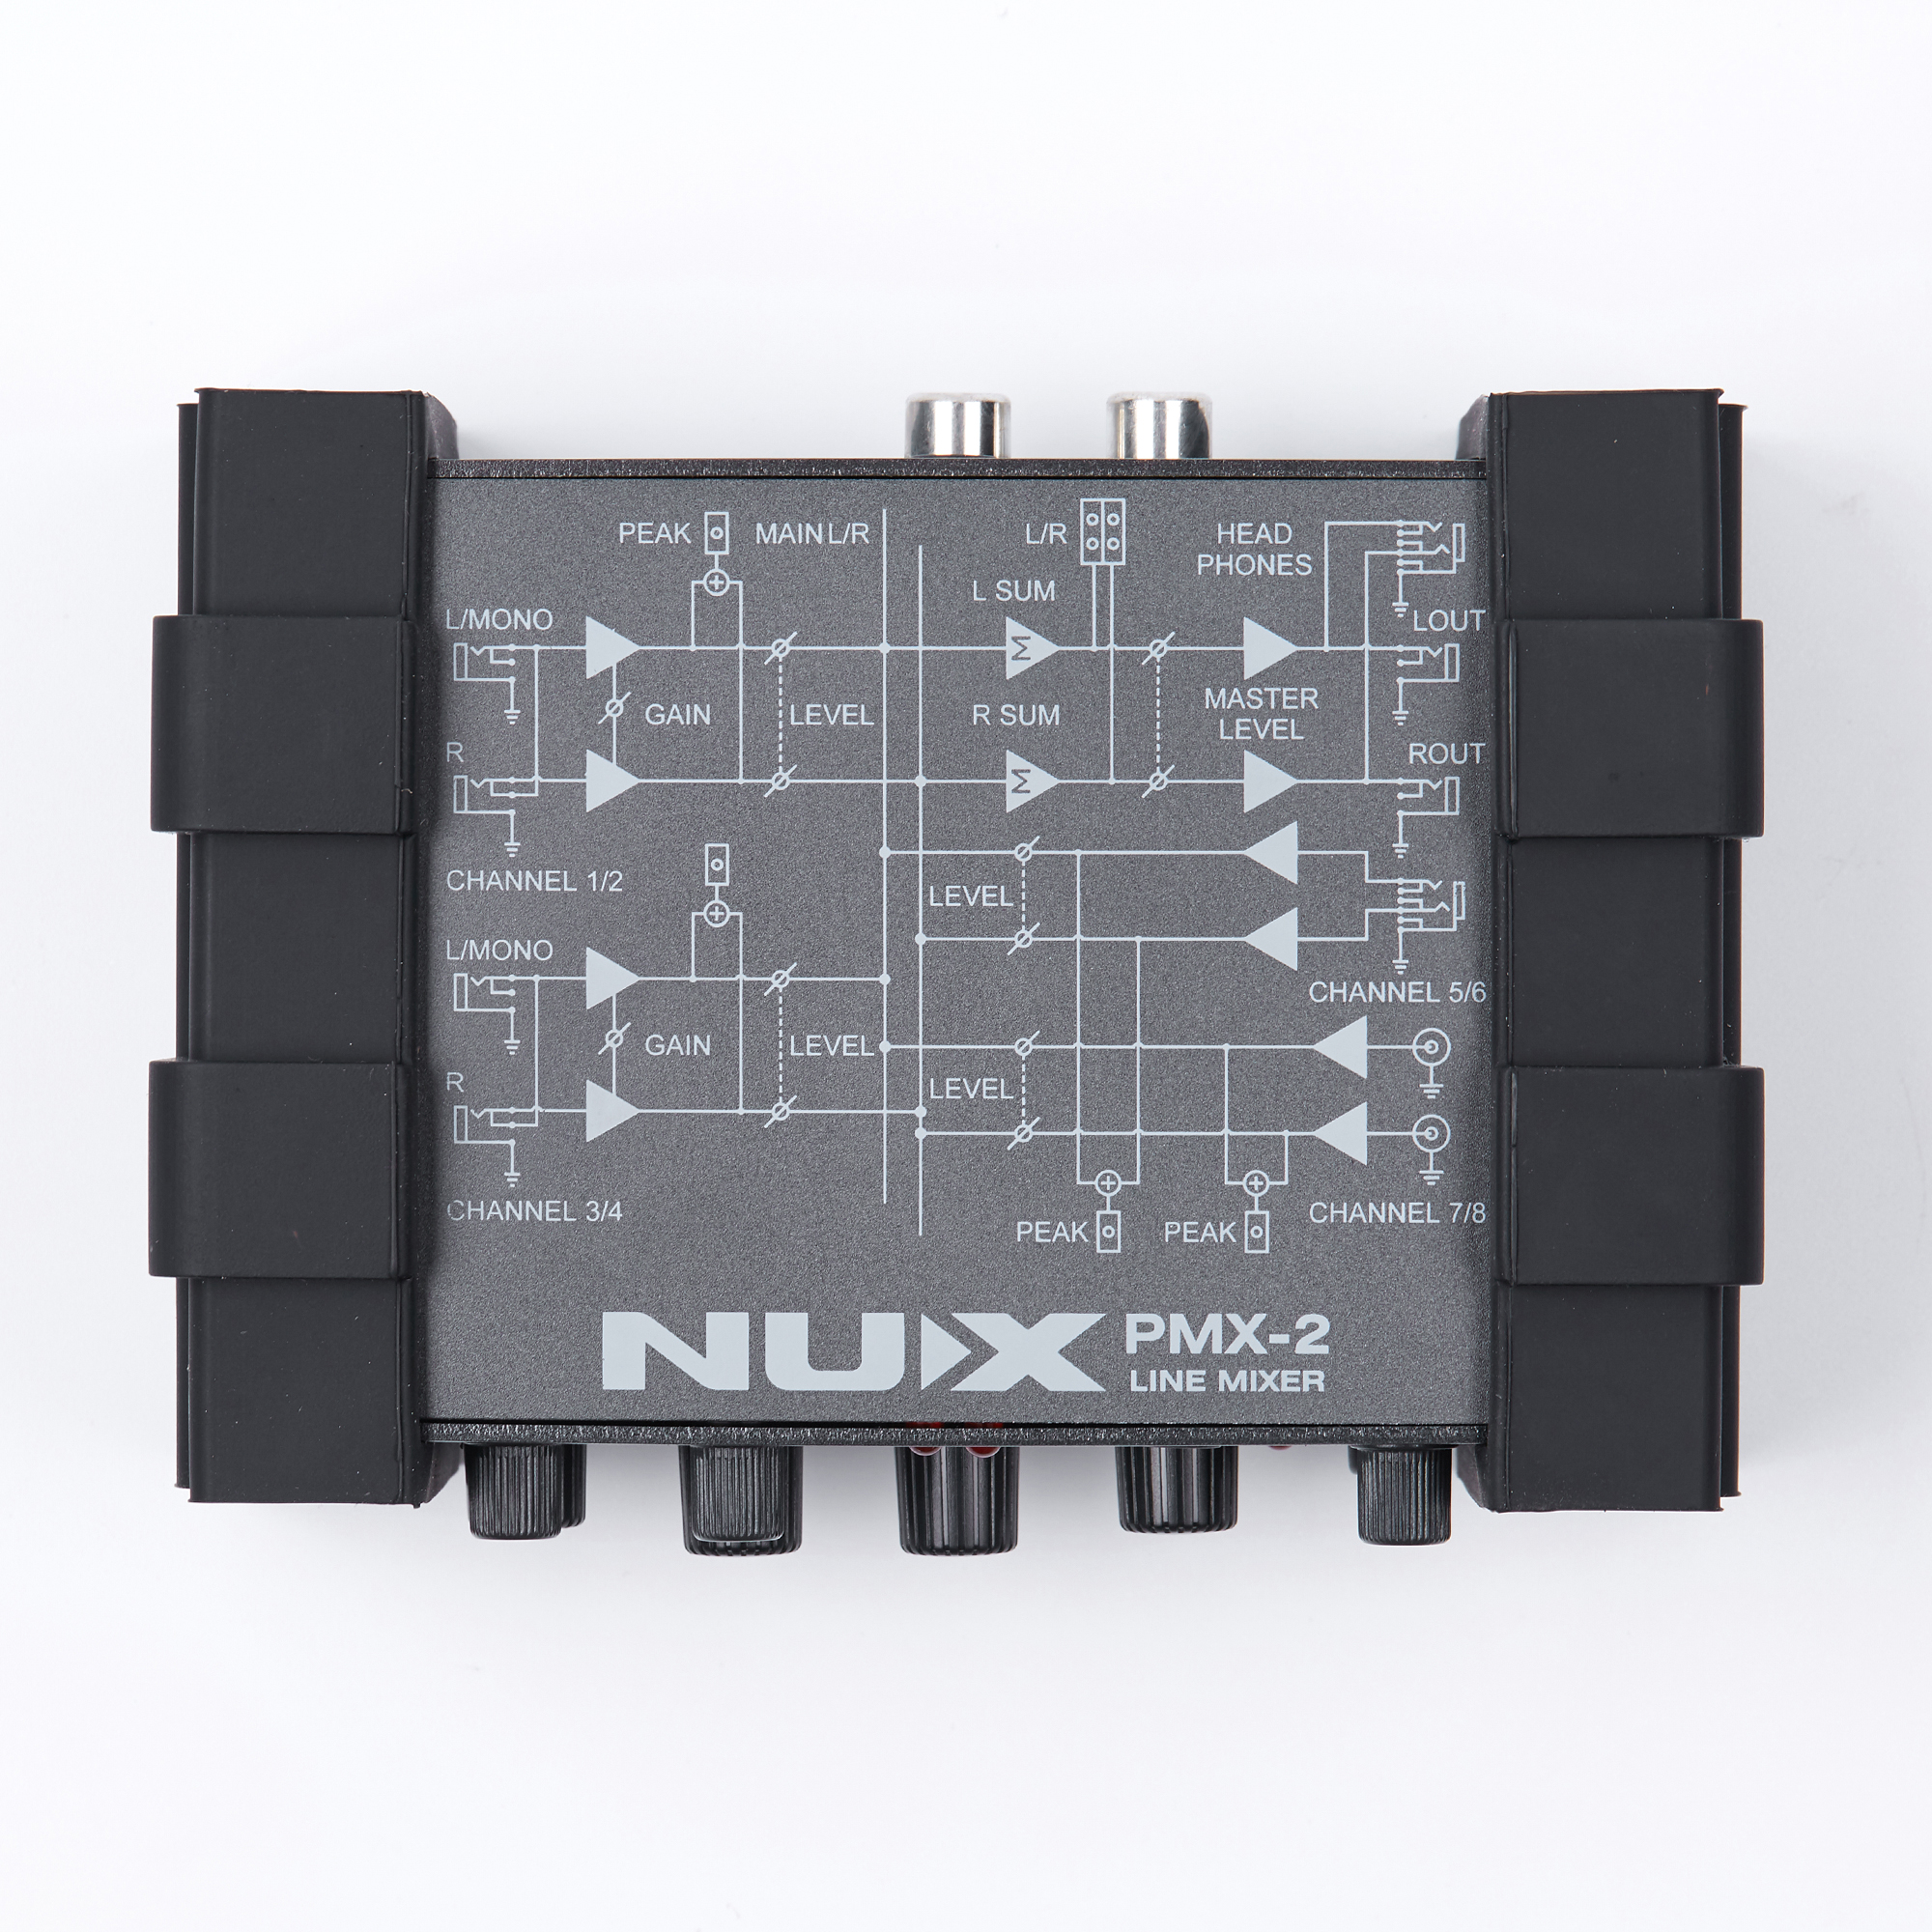 Gain Control 8 Inputs and 2 Outputs NUX PMX-2 Multi-Channel Mini Mixer 30 Musical Instruments Accessories for Guitar Bass Player аппарат для сварки полипропиленовых труб bort brs 2000